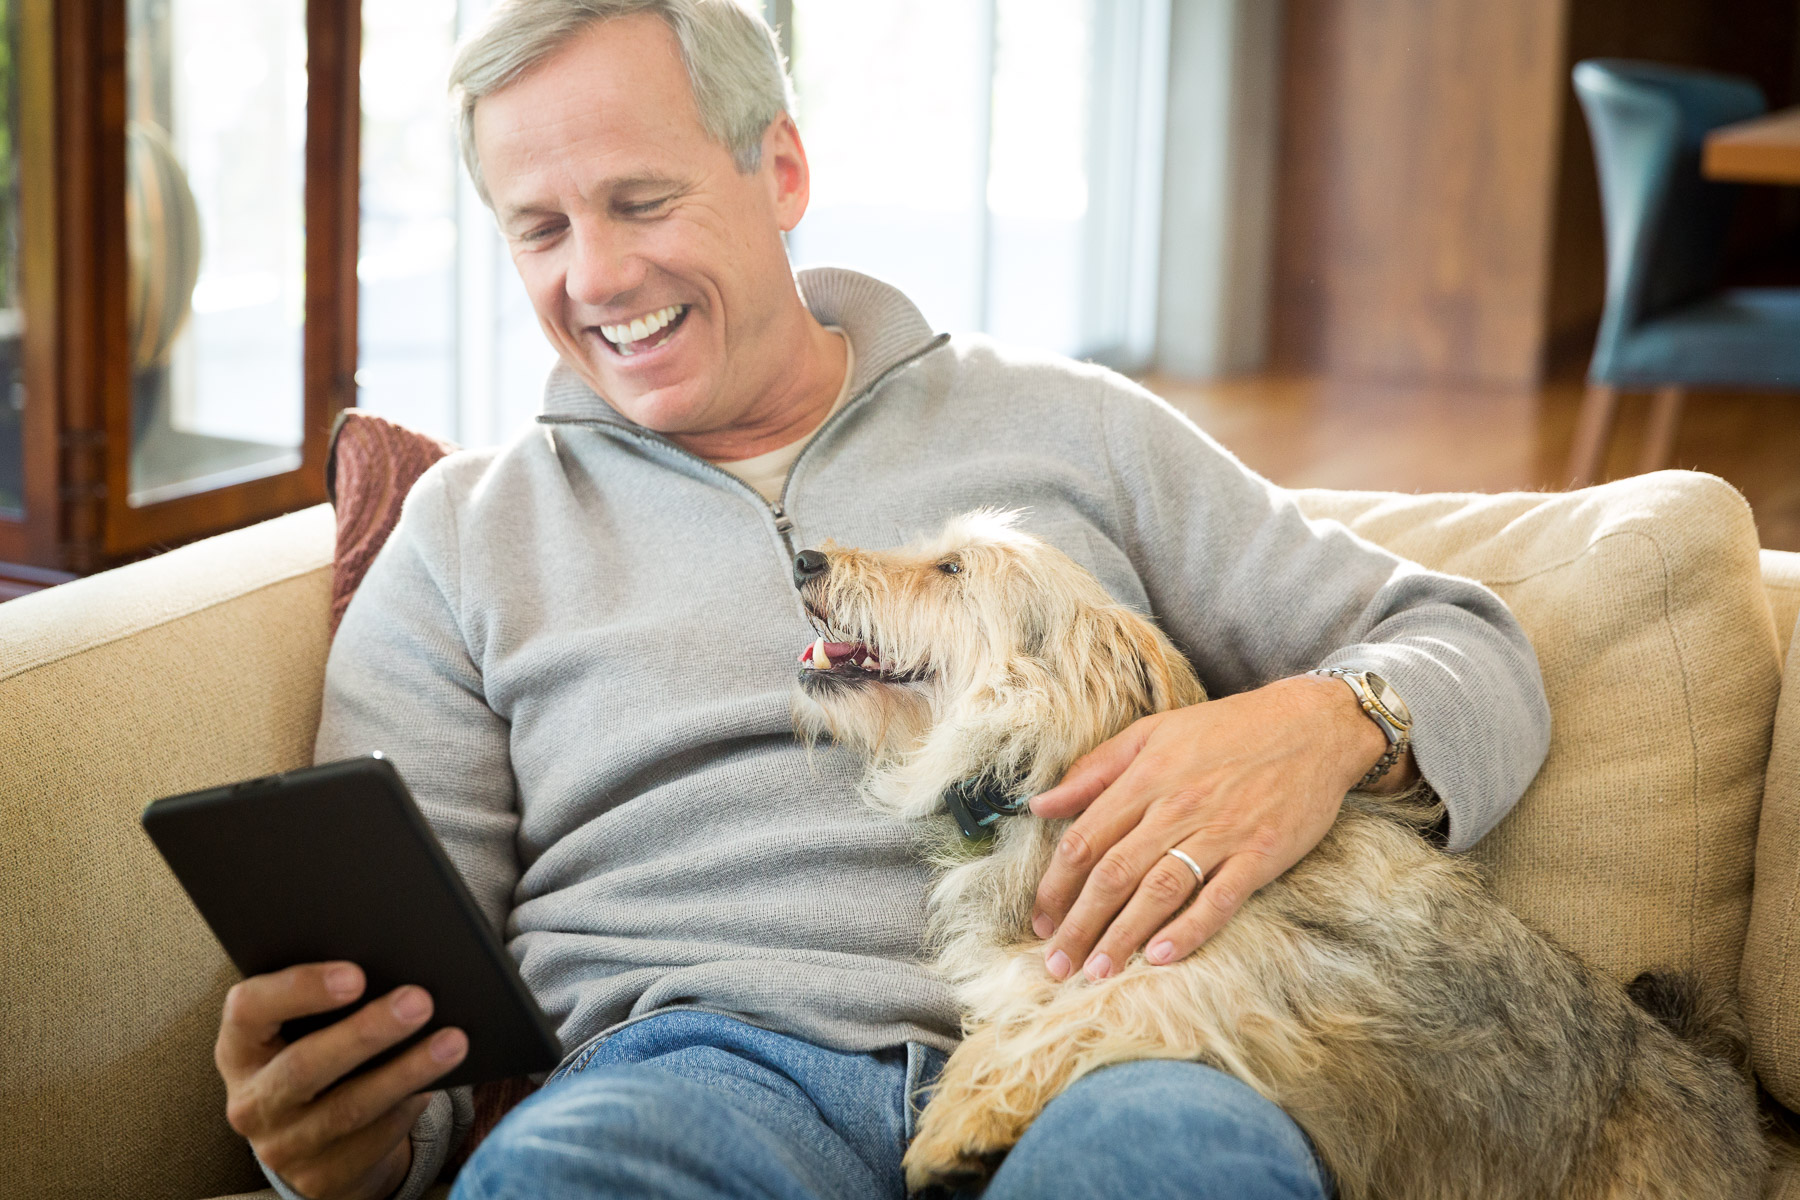 attractive-man-with-dog-reading-couch.jpg